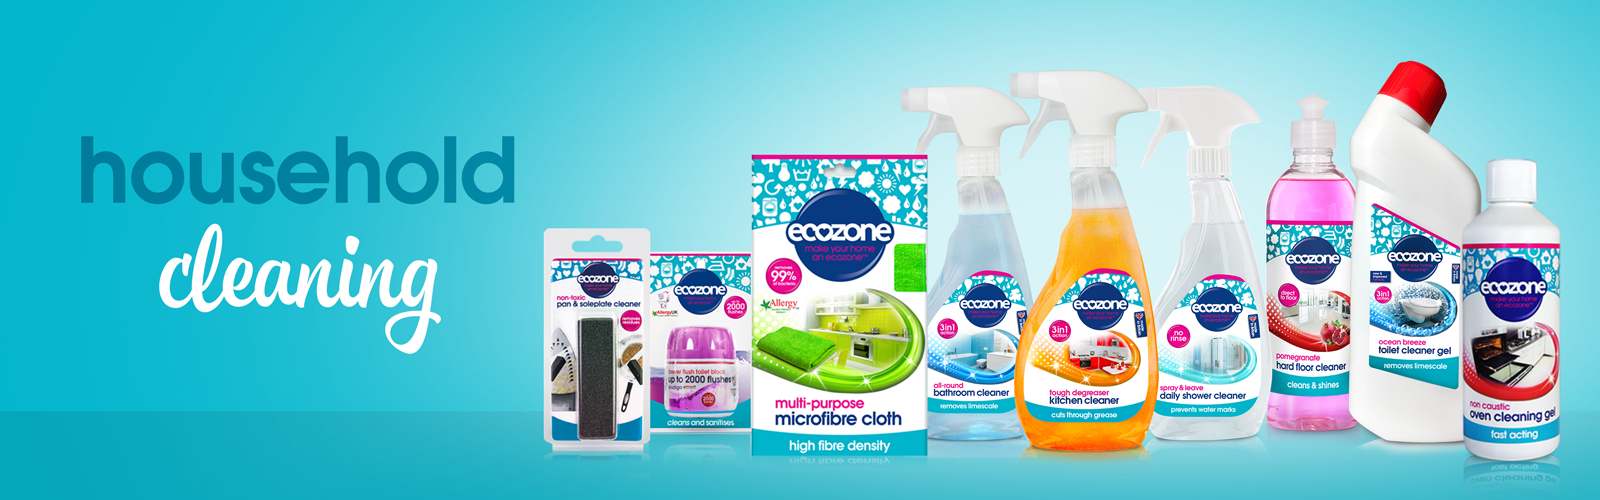 Natural Cleaning Products - Ecozone Household Cleaning Banner